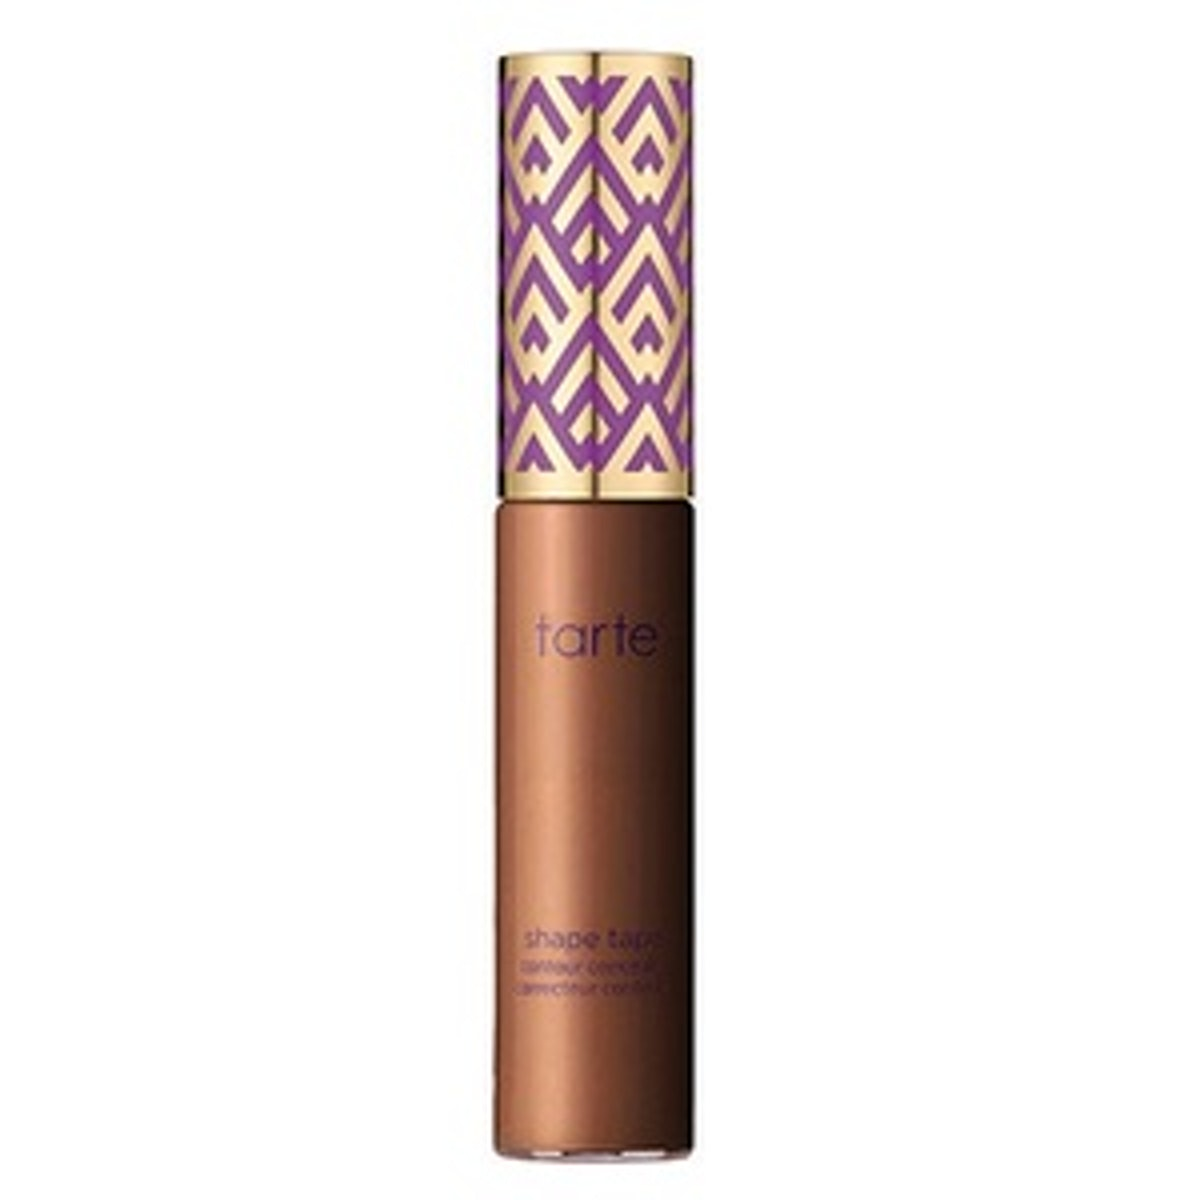 Double Duty Beauty Shape Tape Contour Concealer in Mahogany